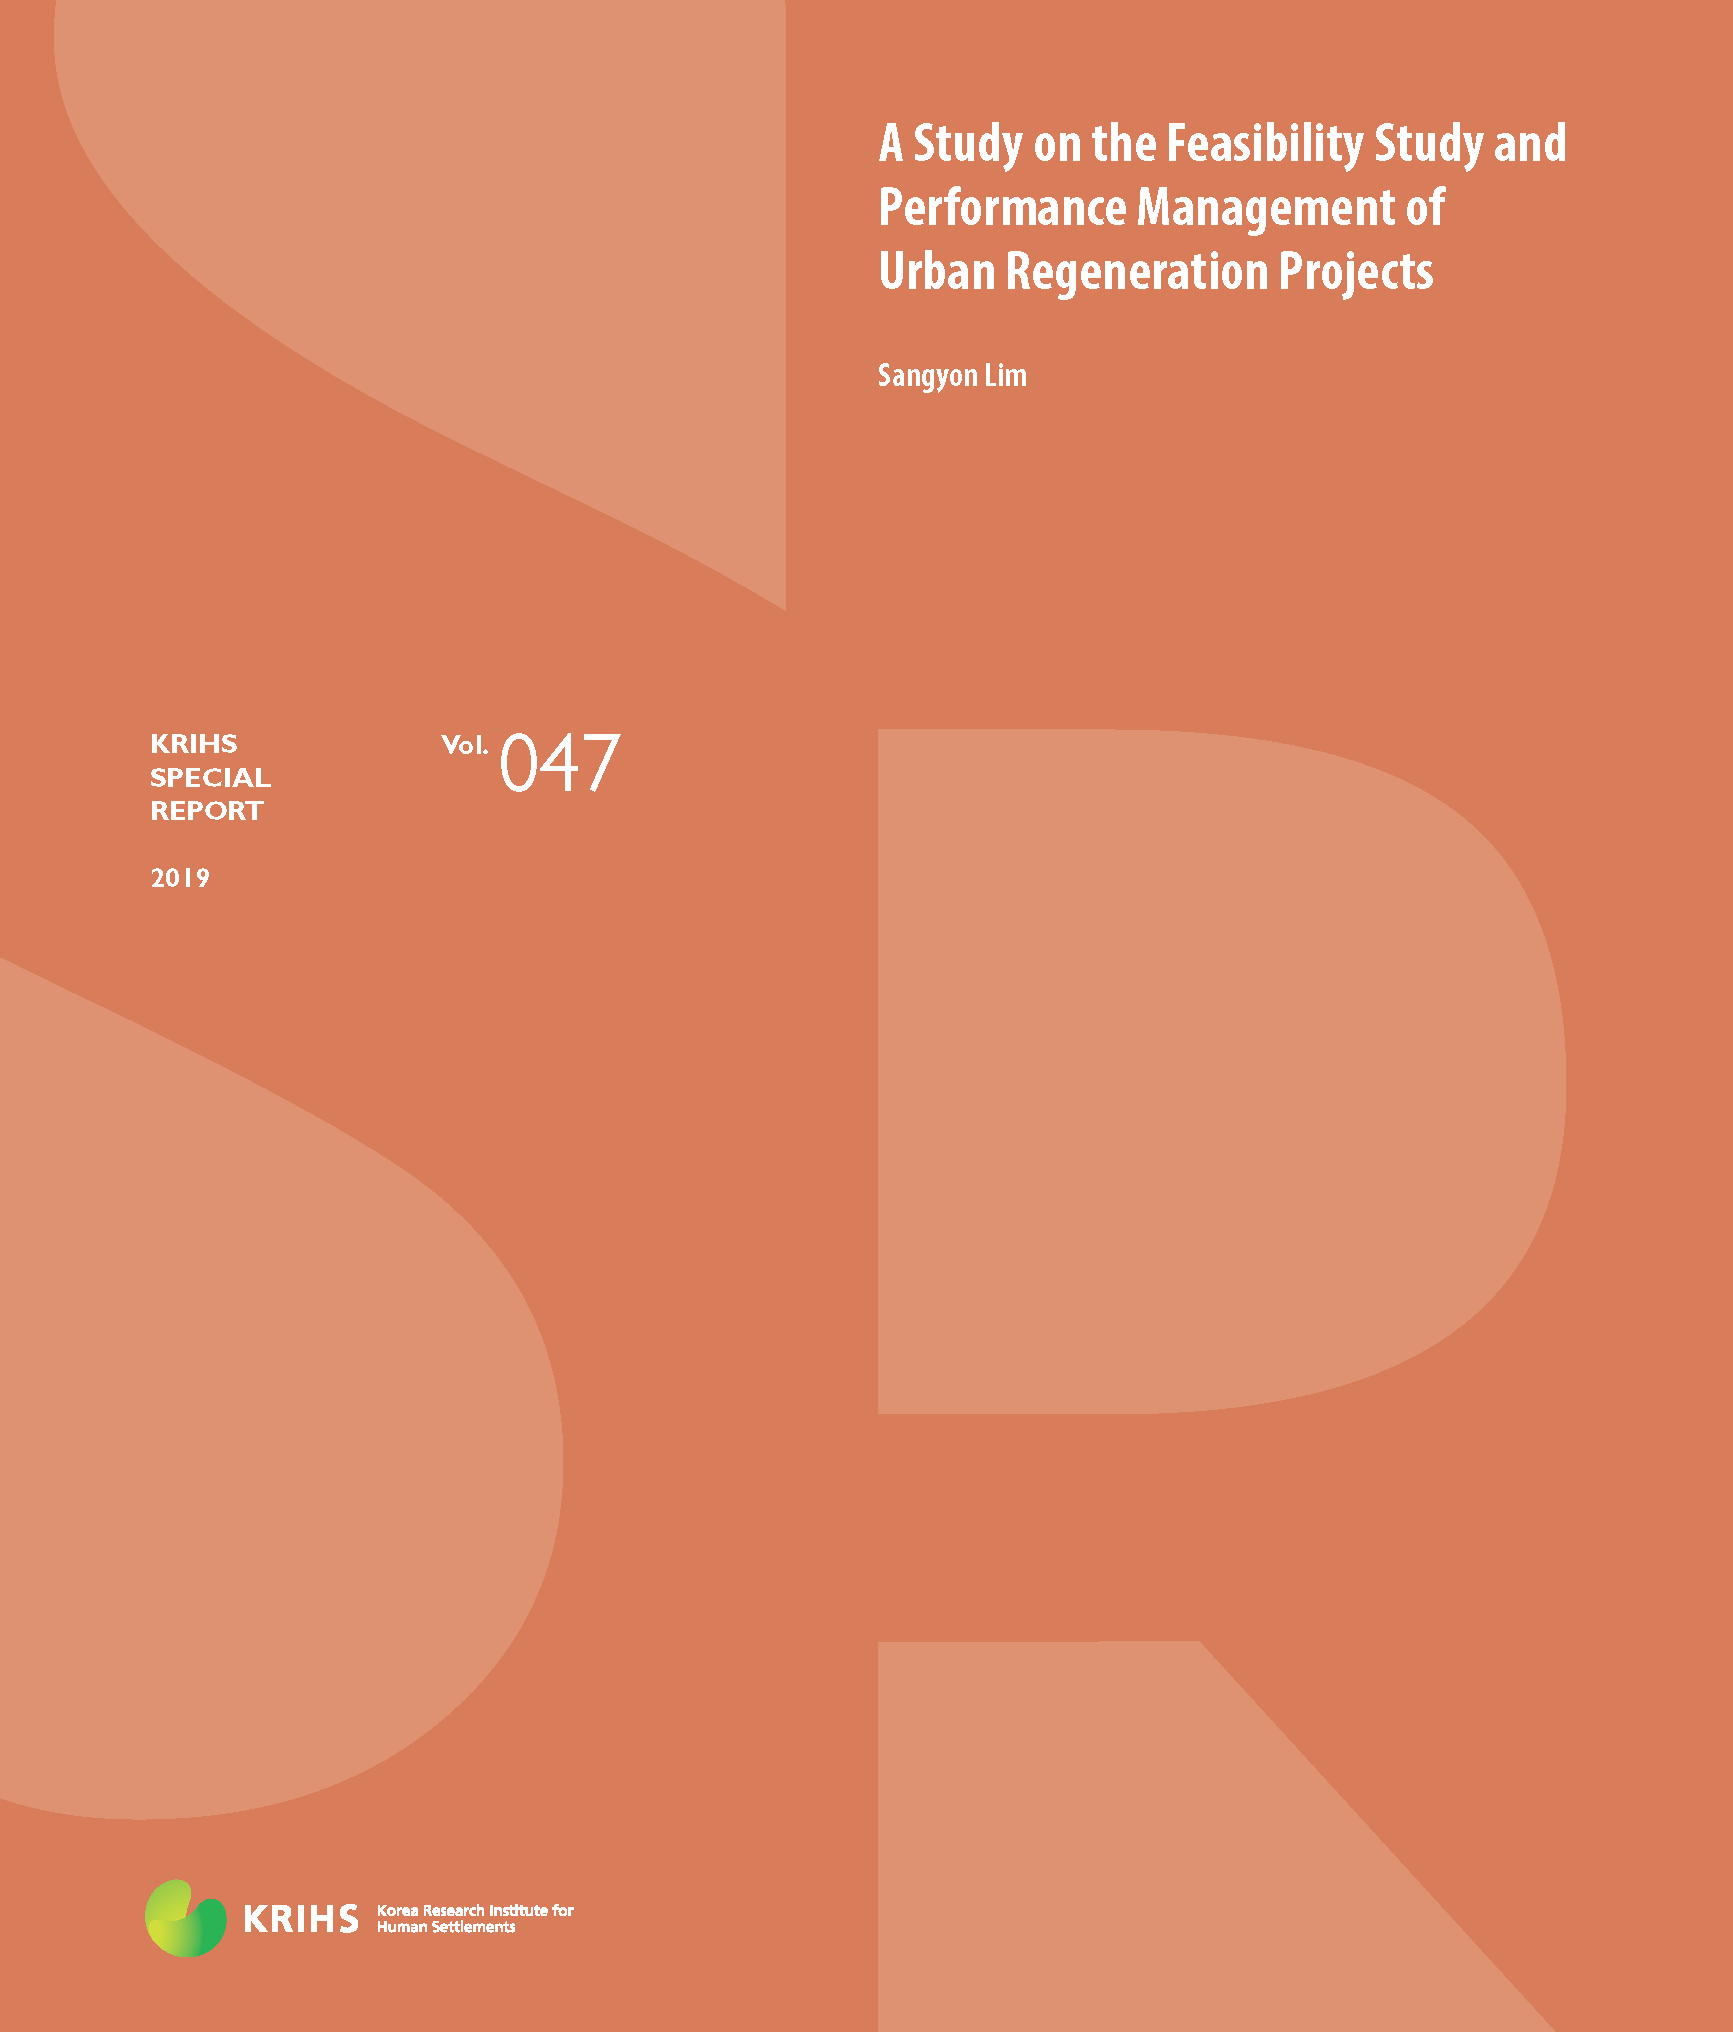 [KRIHS SPECIAL REPORT 47] A Study on the Feasibility Study and Performance Management of Urban Regeneration Projects